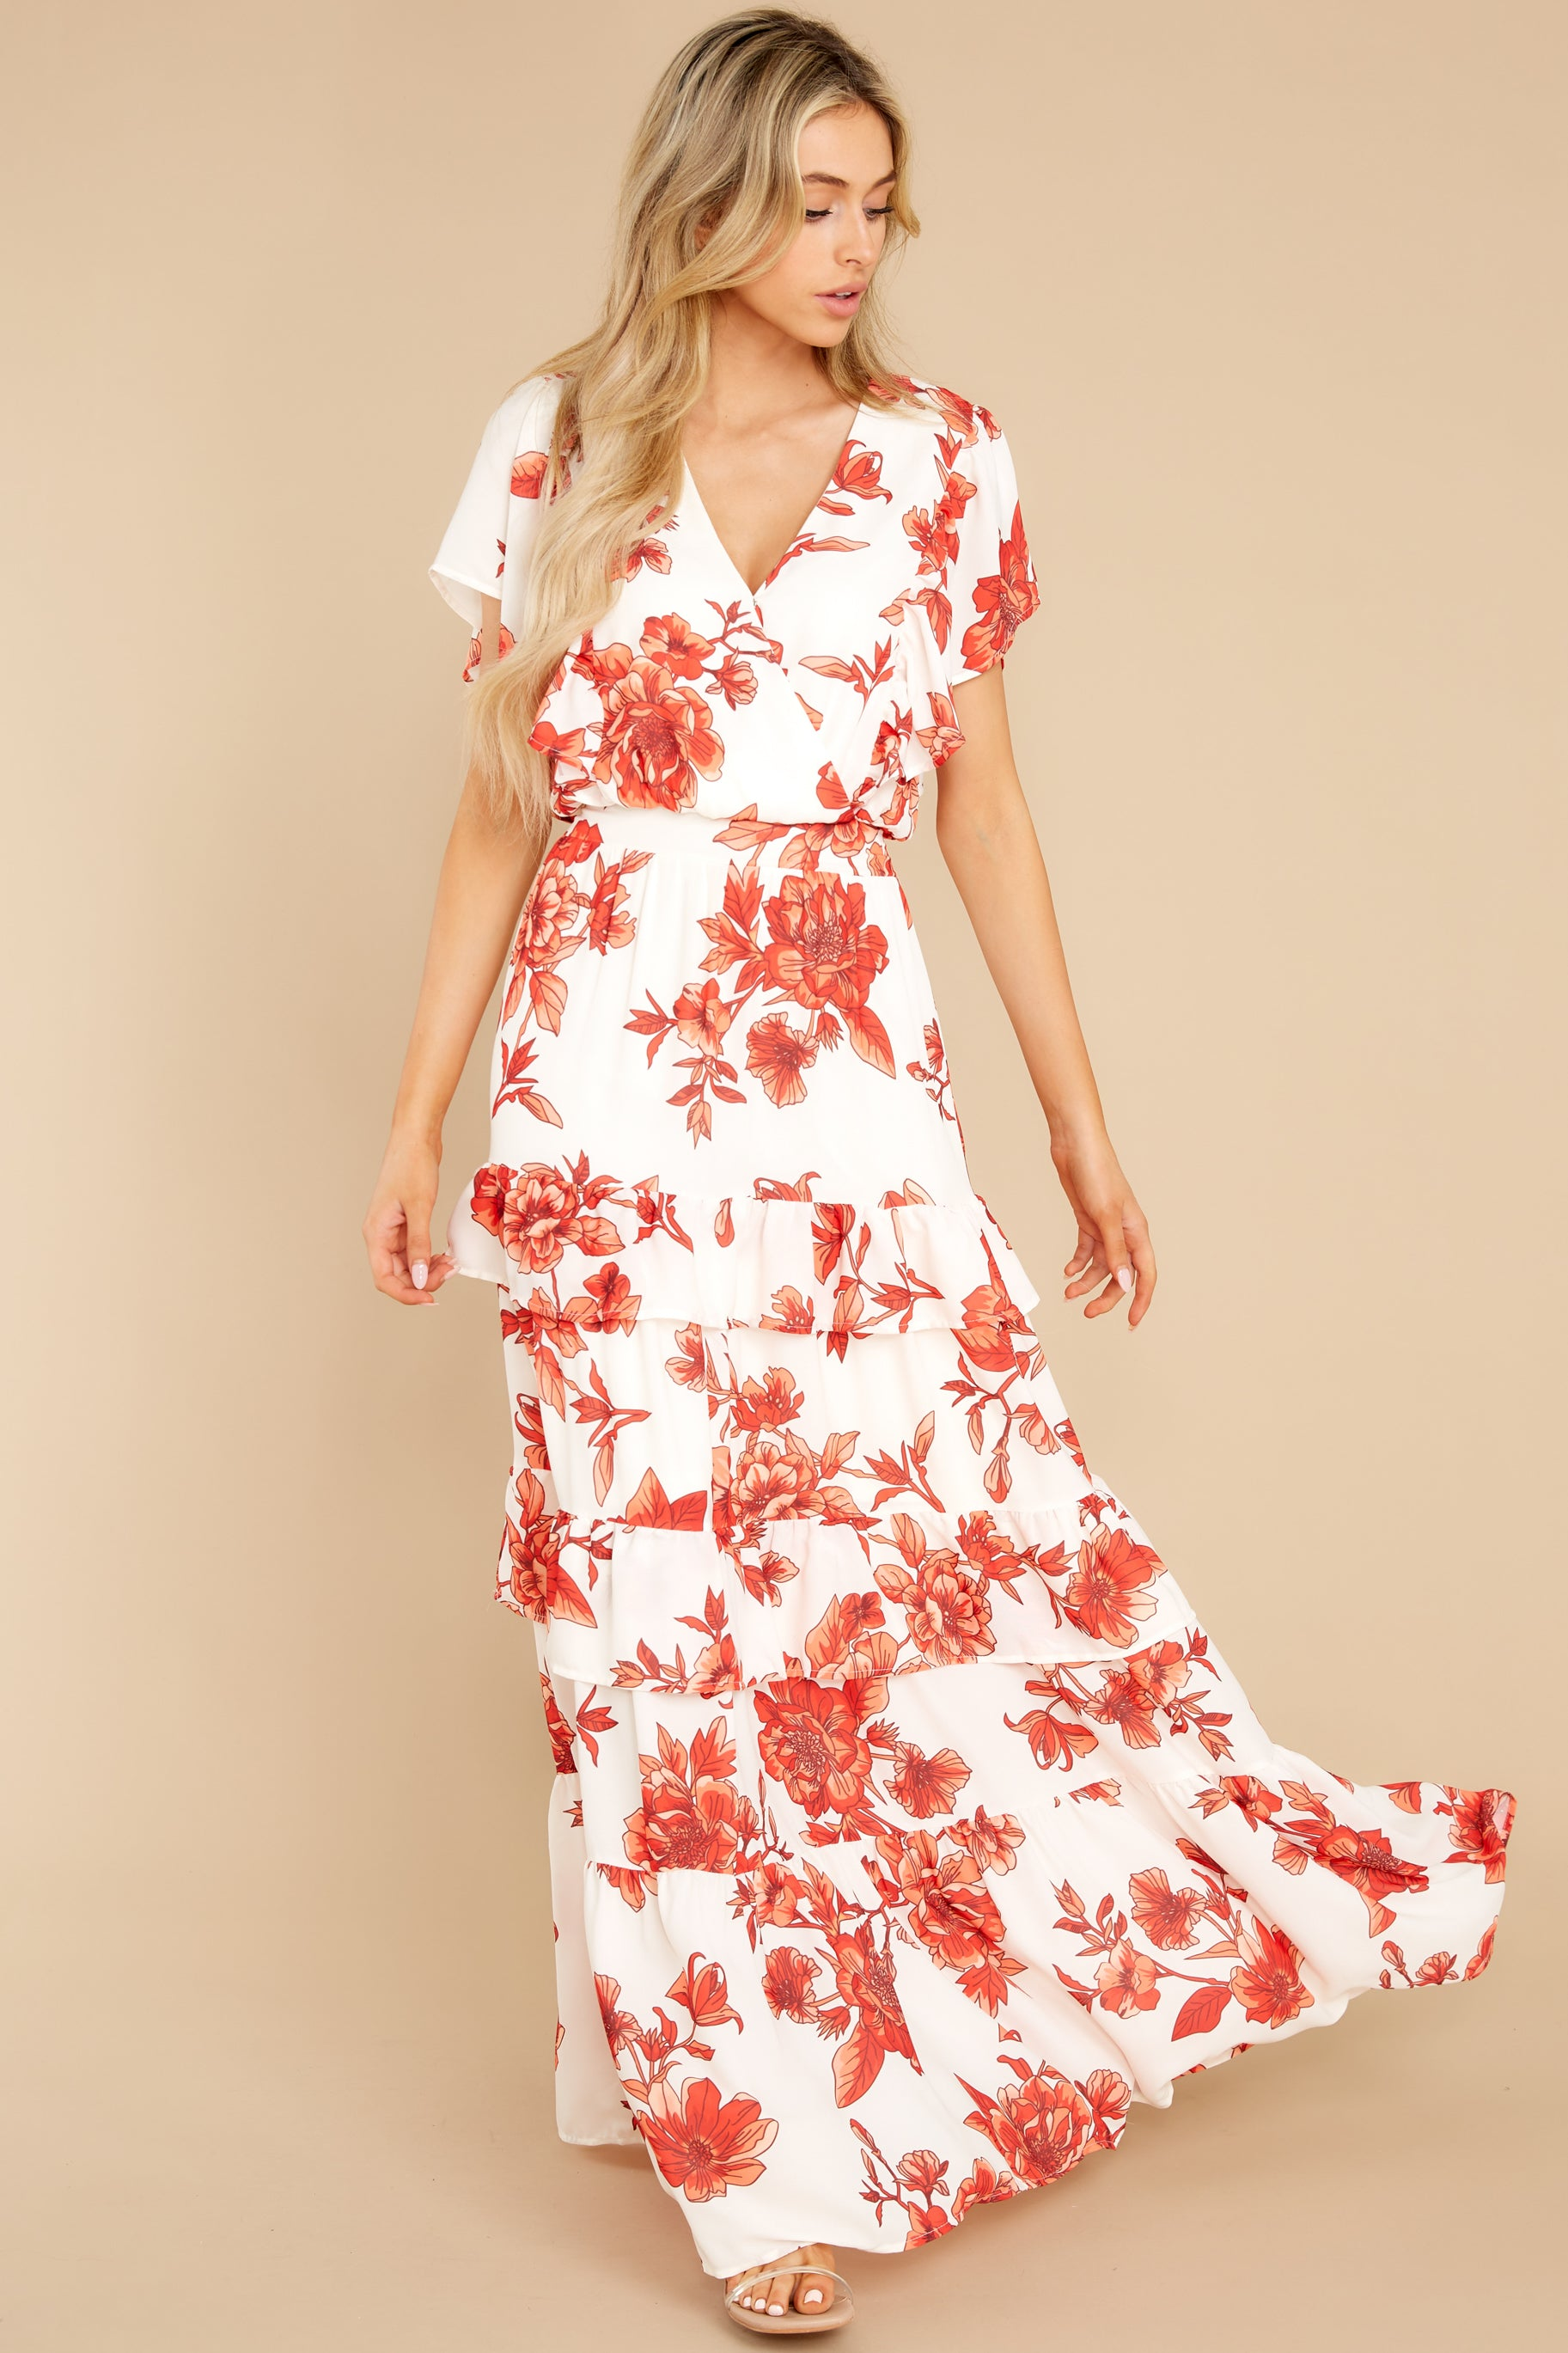 3 Radiating Confidence Orange And Ivory Floral Print Maxi Dress at reddress.com